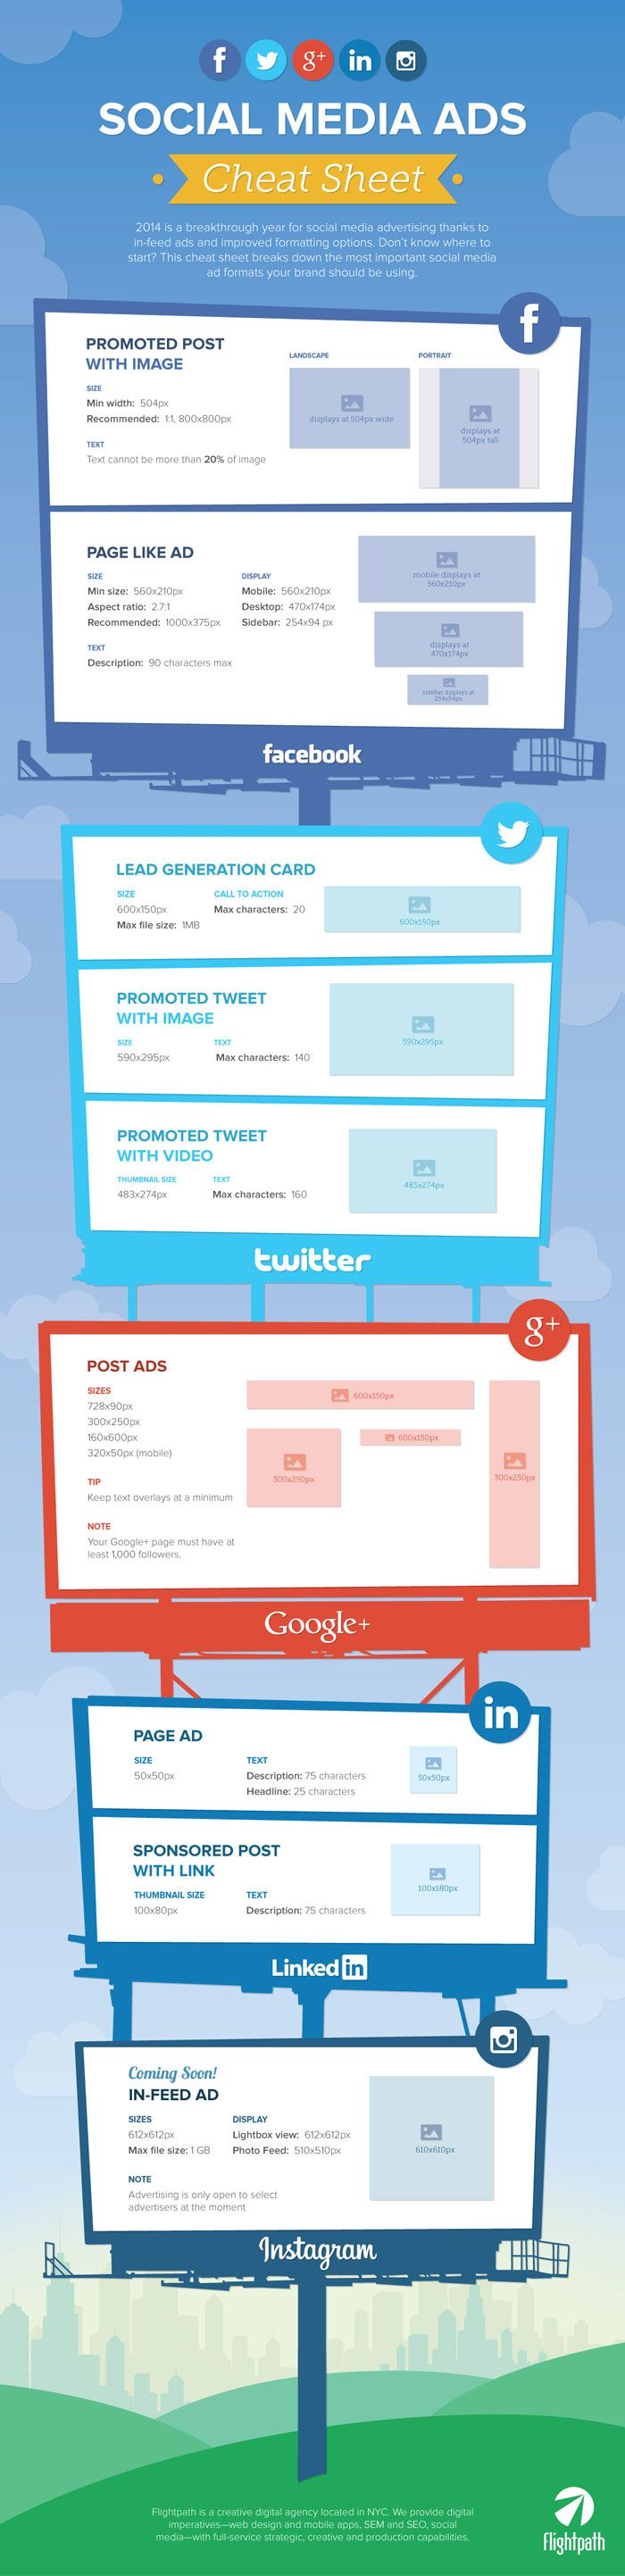 Social Media Ad Sizes vary between platforms – and a lot of platforms are offering ads now! You may be considering not only Facebook ads, but Twitter ads, Google+ ads, LinkedIn ads, and before too long – Instagram ads too! This #infographic helps you out by listing the most popular ad sizes, and handy tips to optimize each format. #socialmediatips